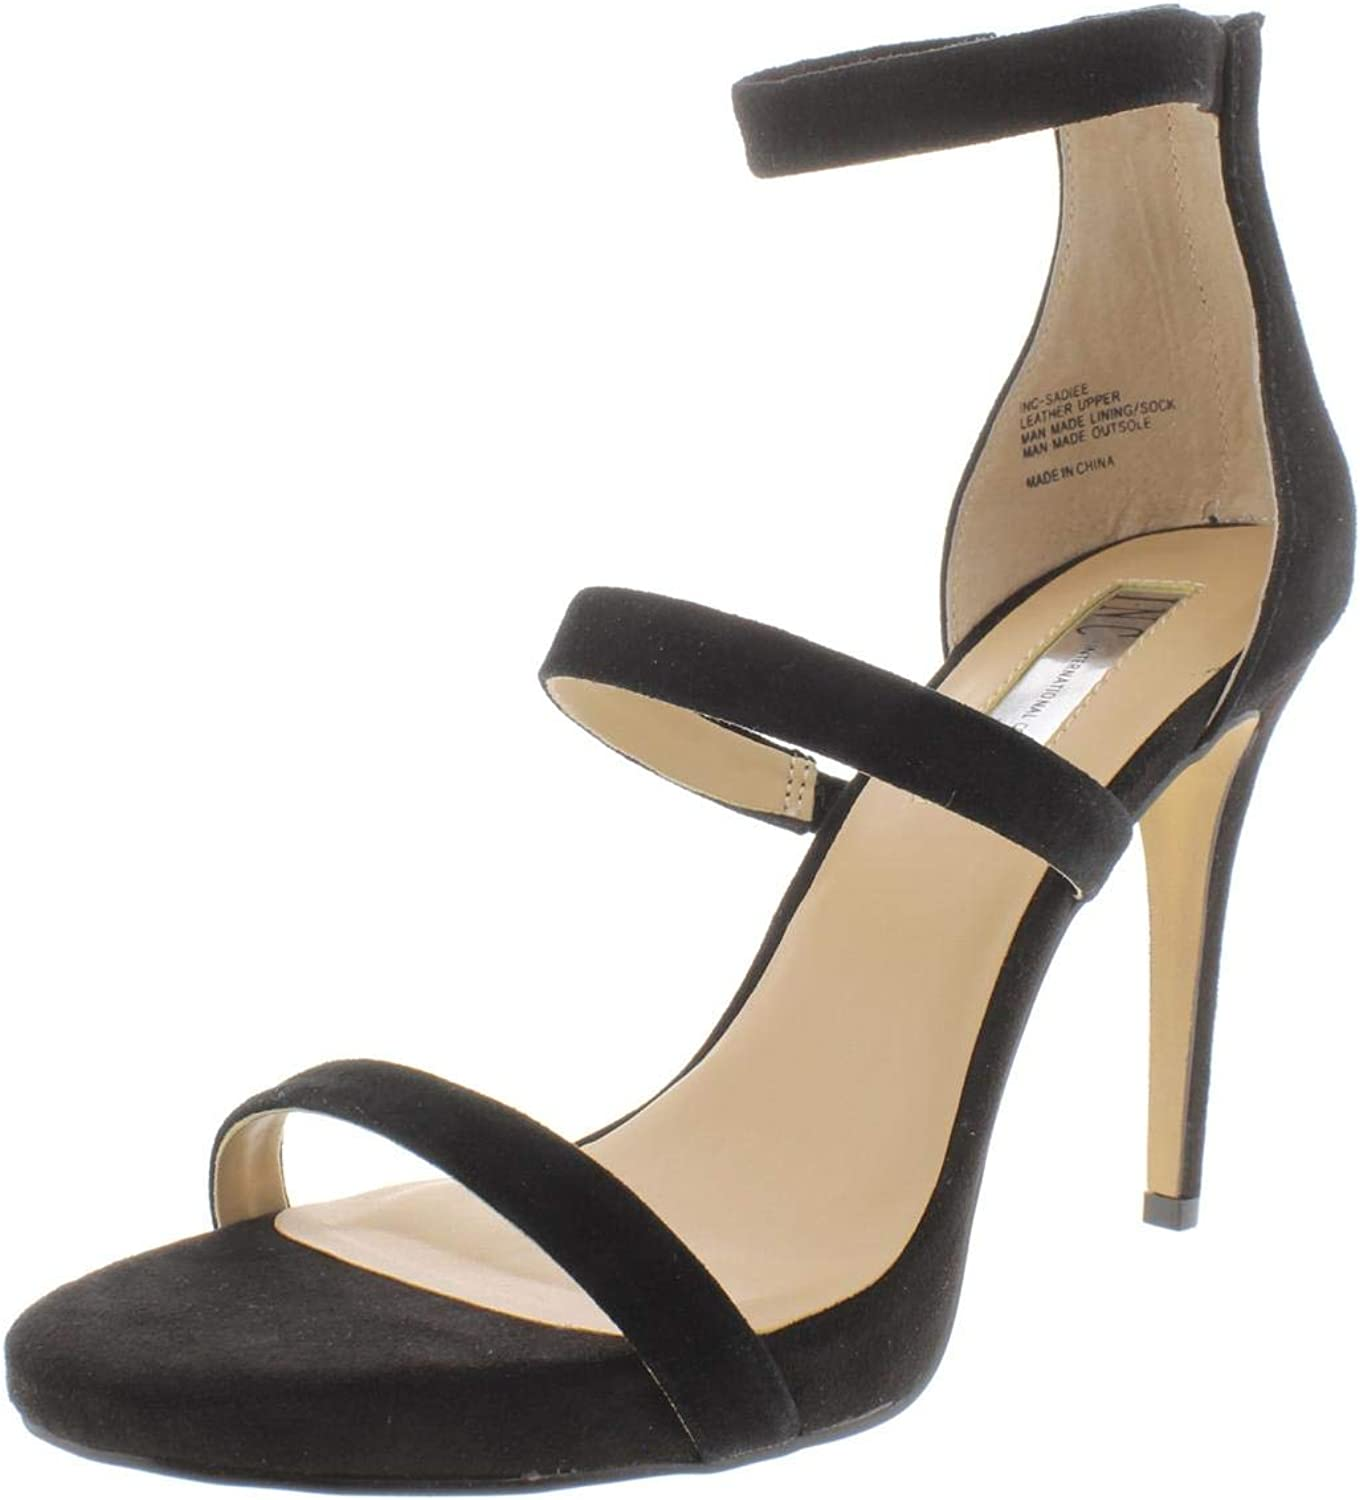 Inc Womens Sadiee Suede Stiletto Dress Sandals Black 9 Medium (B,M)